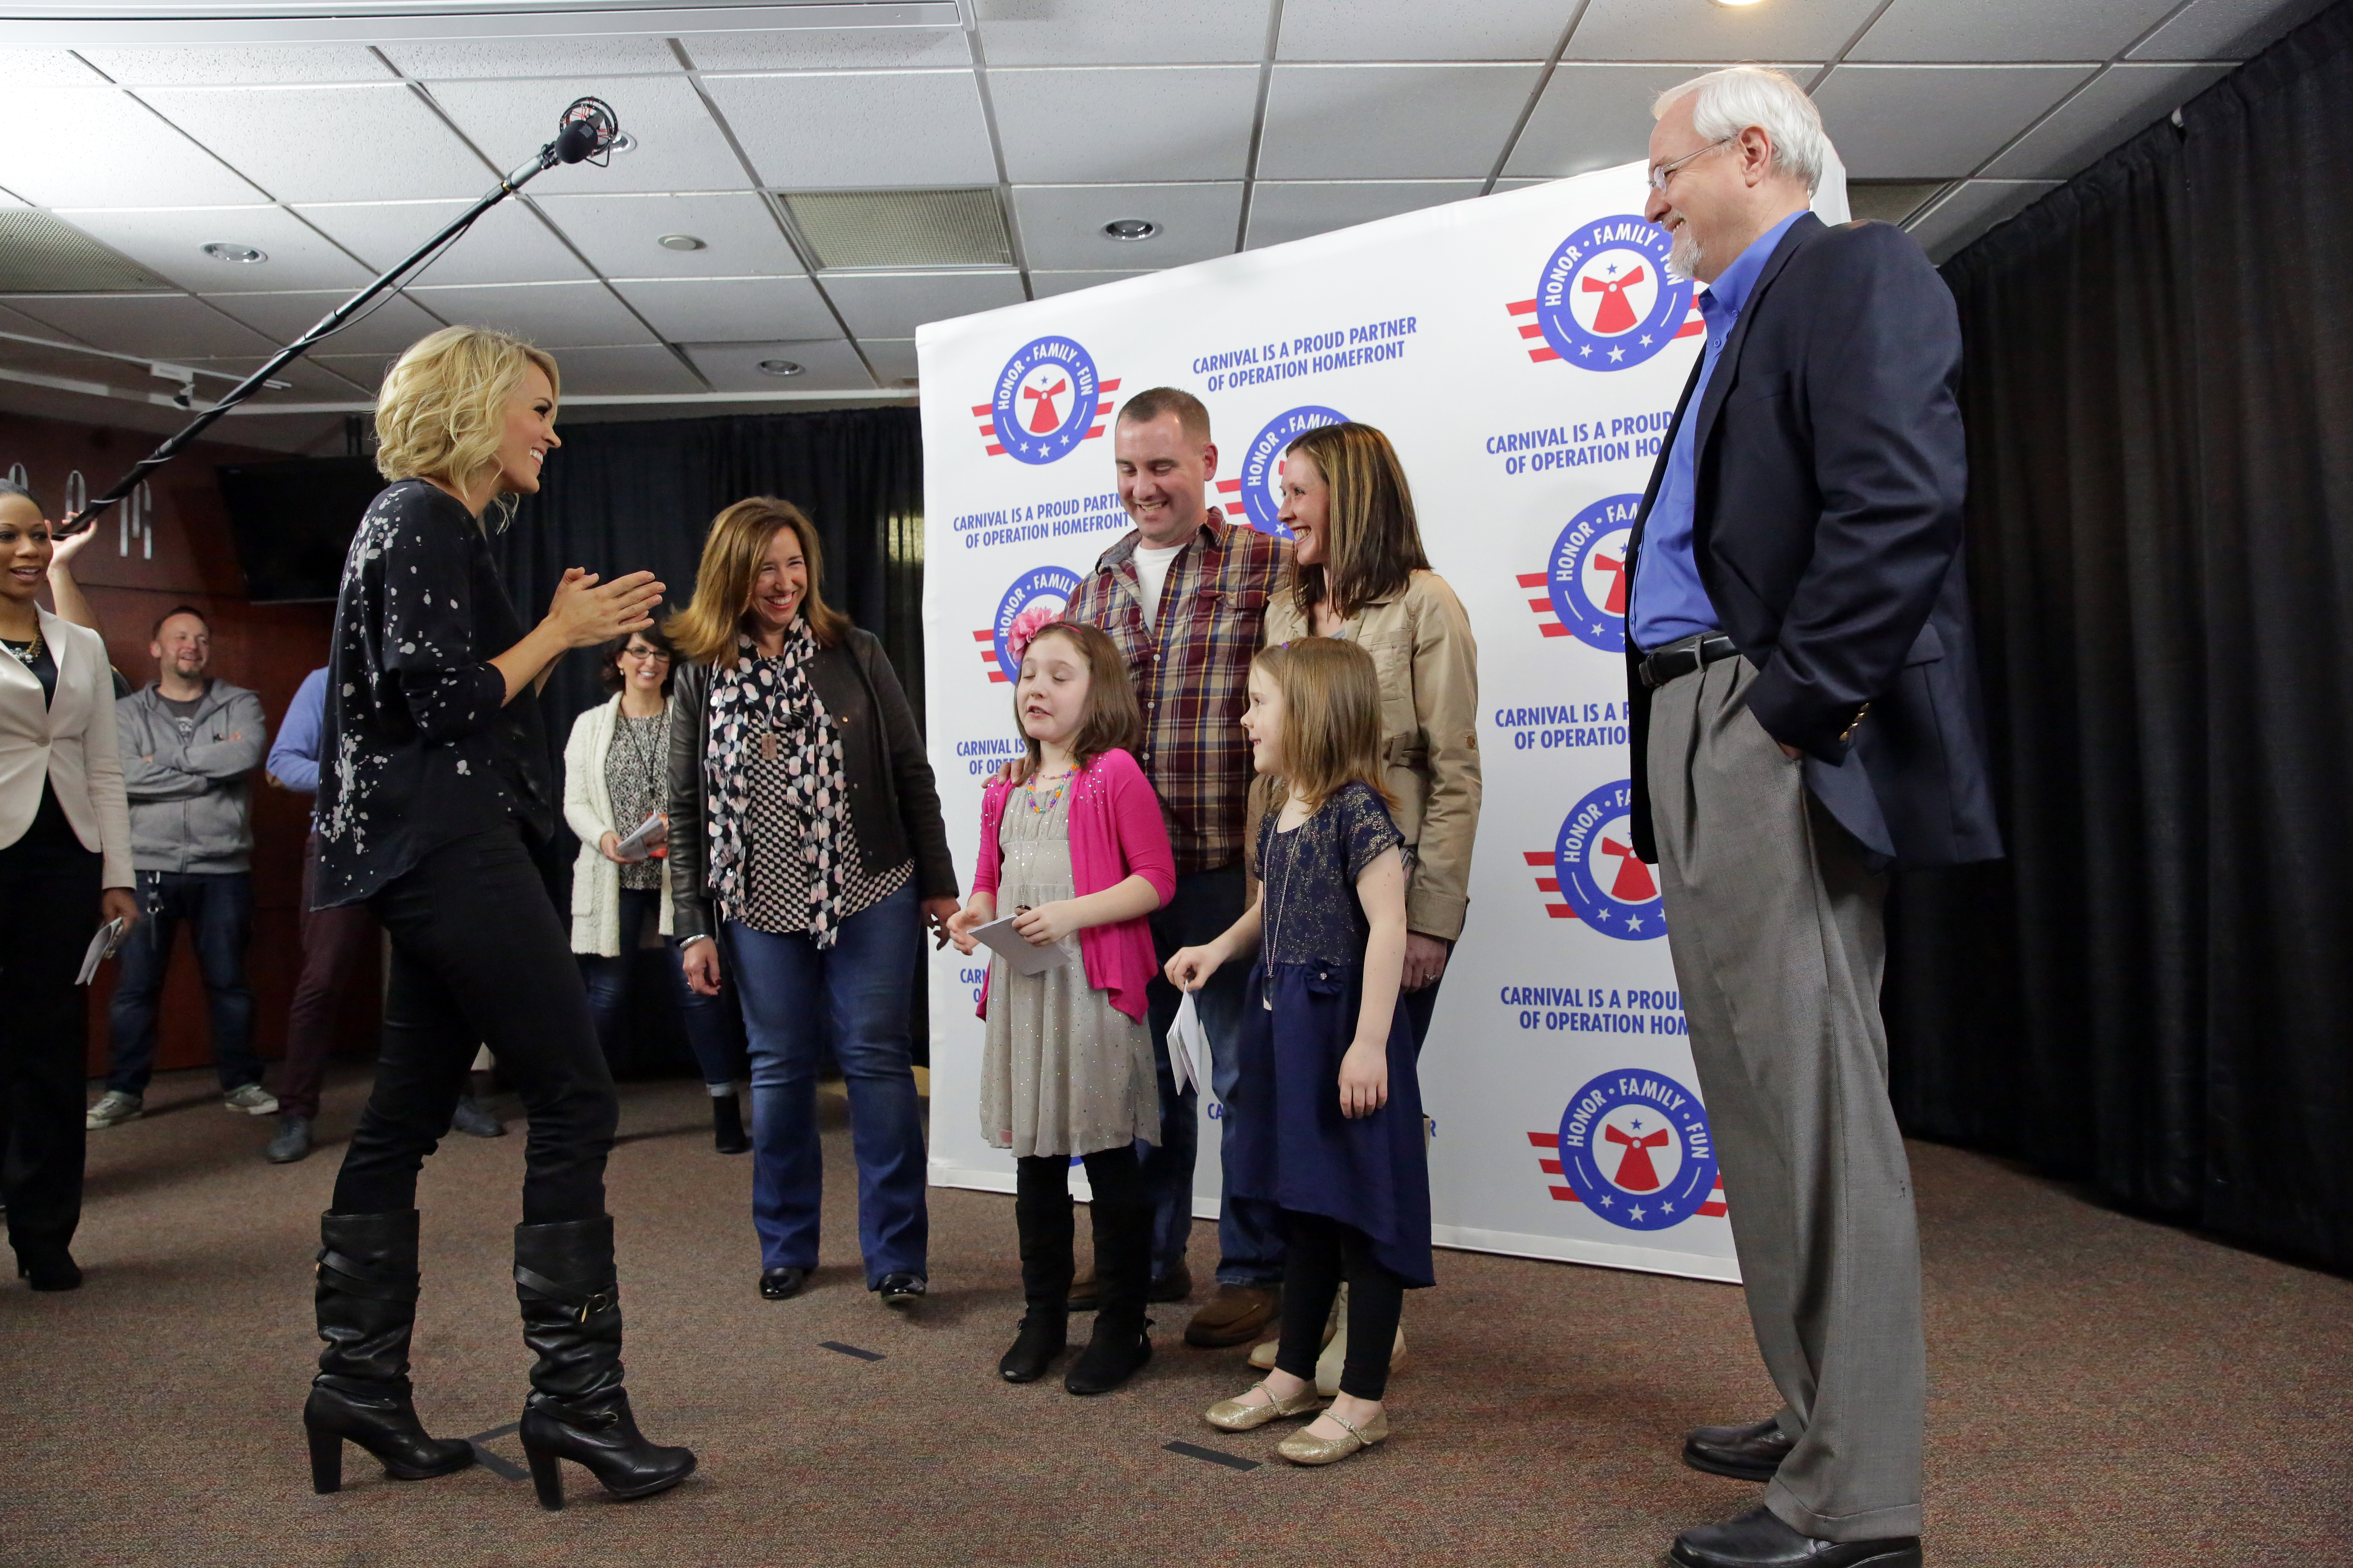 Carnival Teams Up With Country Music Superstar Carrie Underwood and Operation Homefront to Support Military Families at Pre-Concert Meet and Greet